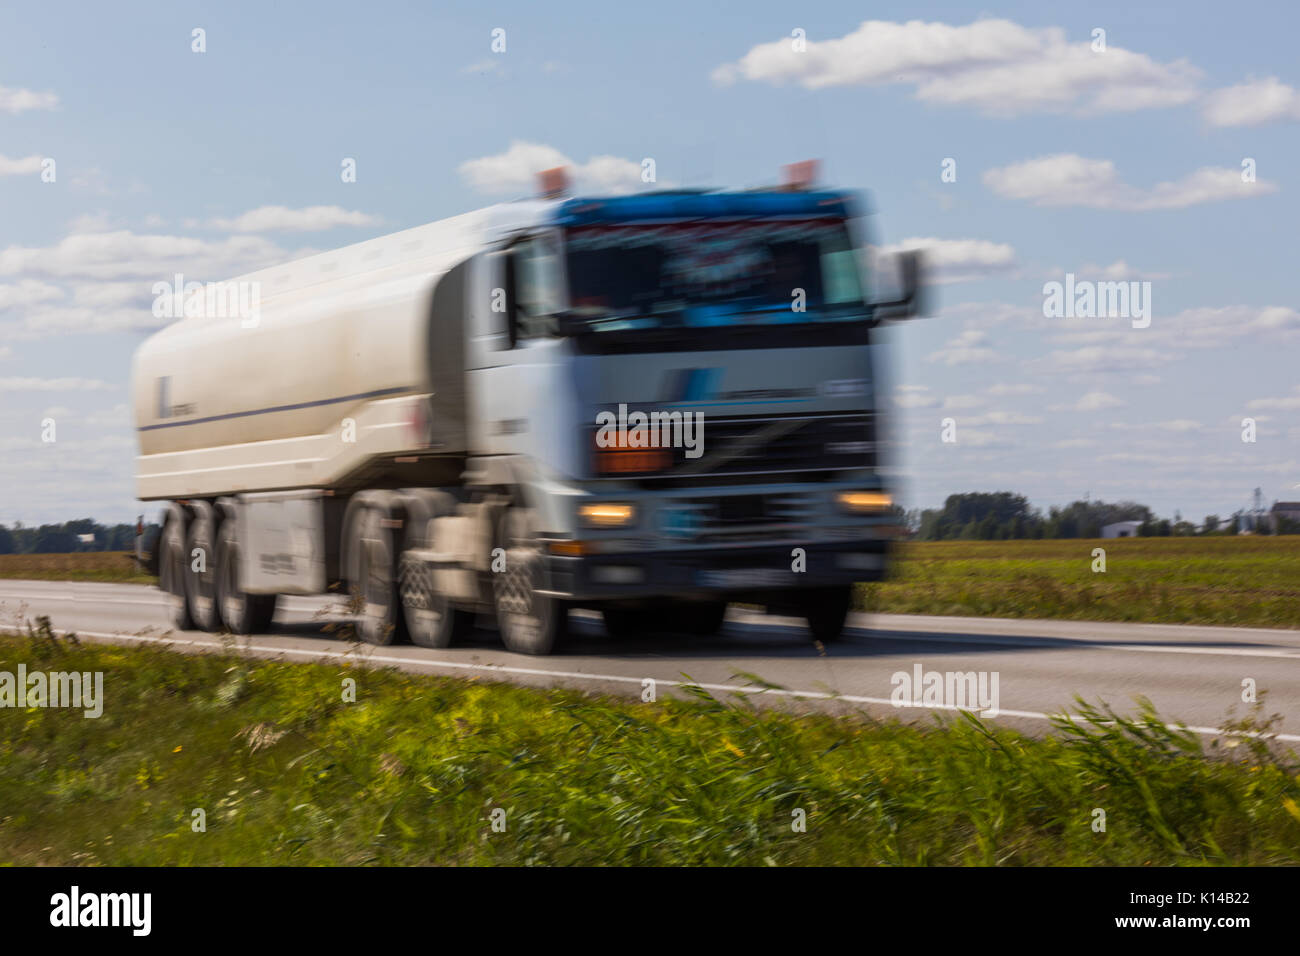 Truck transport on the road with motion blur. Blurred image background. Colorful wallpaper with copy space. - Stock Image